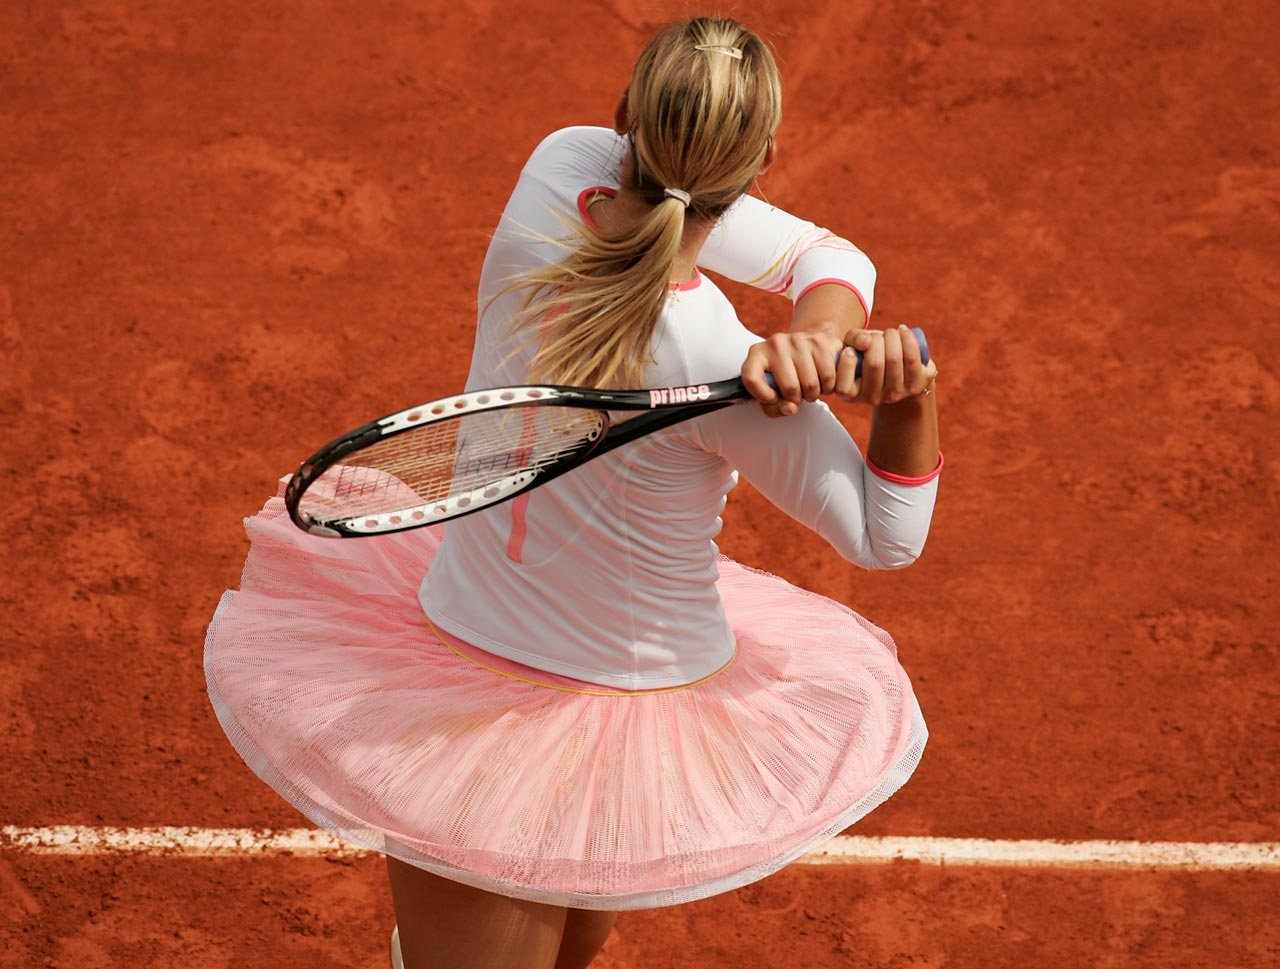 After missing almost the entire clay court season due to injury, Sharapova returned in time for the 2006 French Open. Despite struggling to get through the first round, Sharapova recovered to advance to the fourth round before losing to Dinara Safina 7-5, 2-6, 7-5.